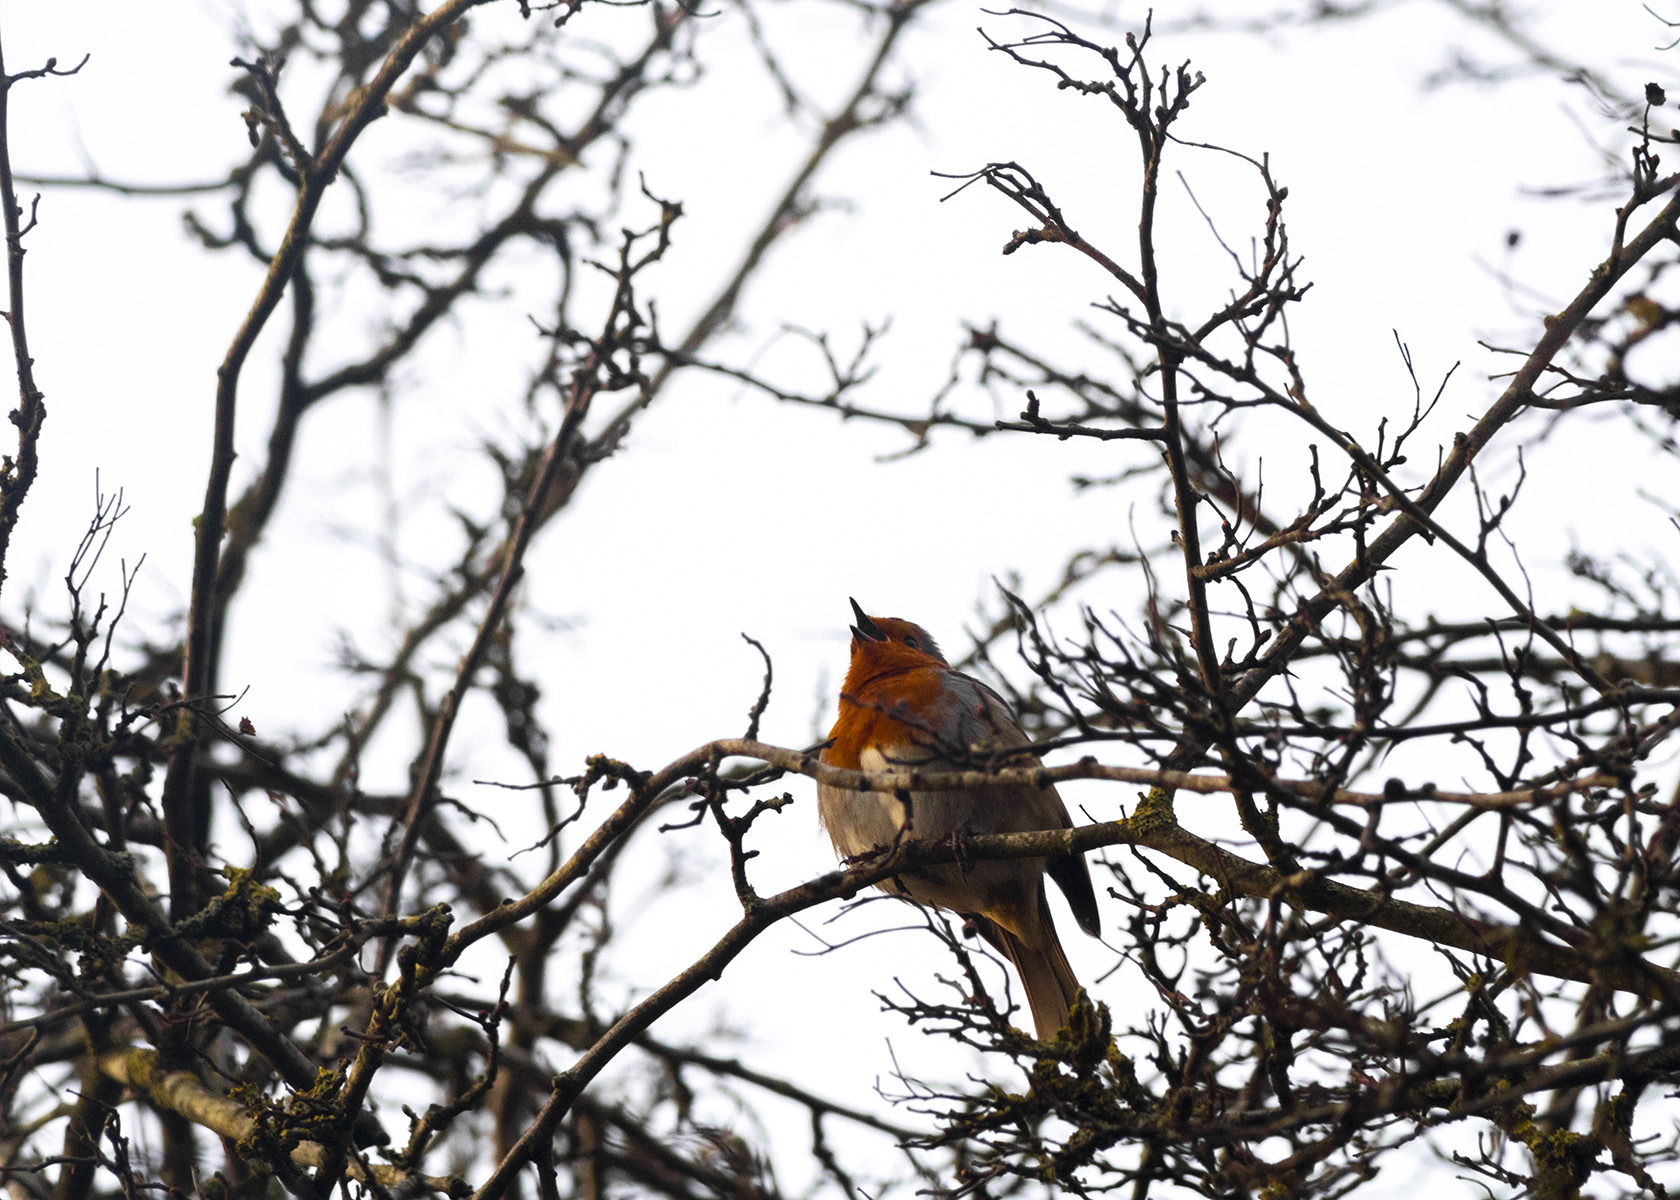 Robin singing in the leafless branches, at Quaker Wood